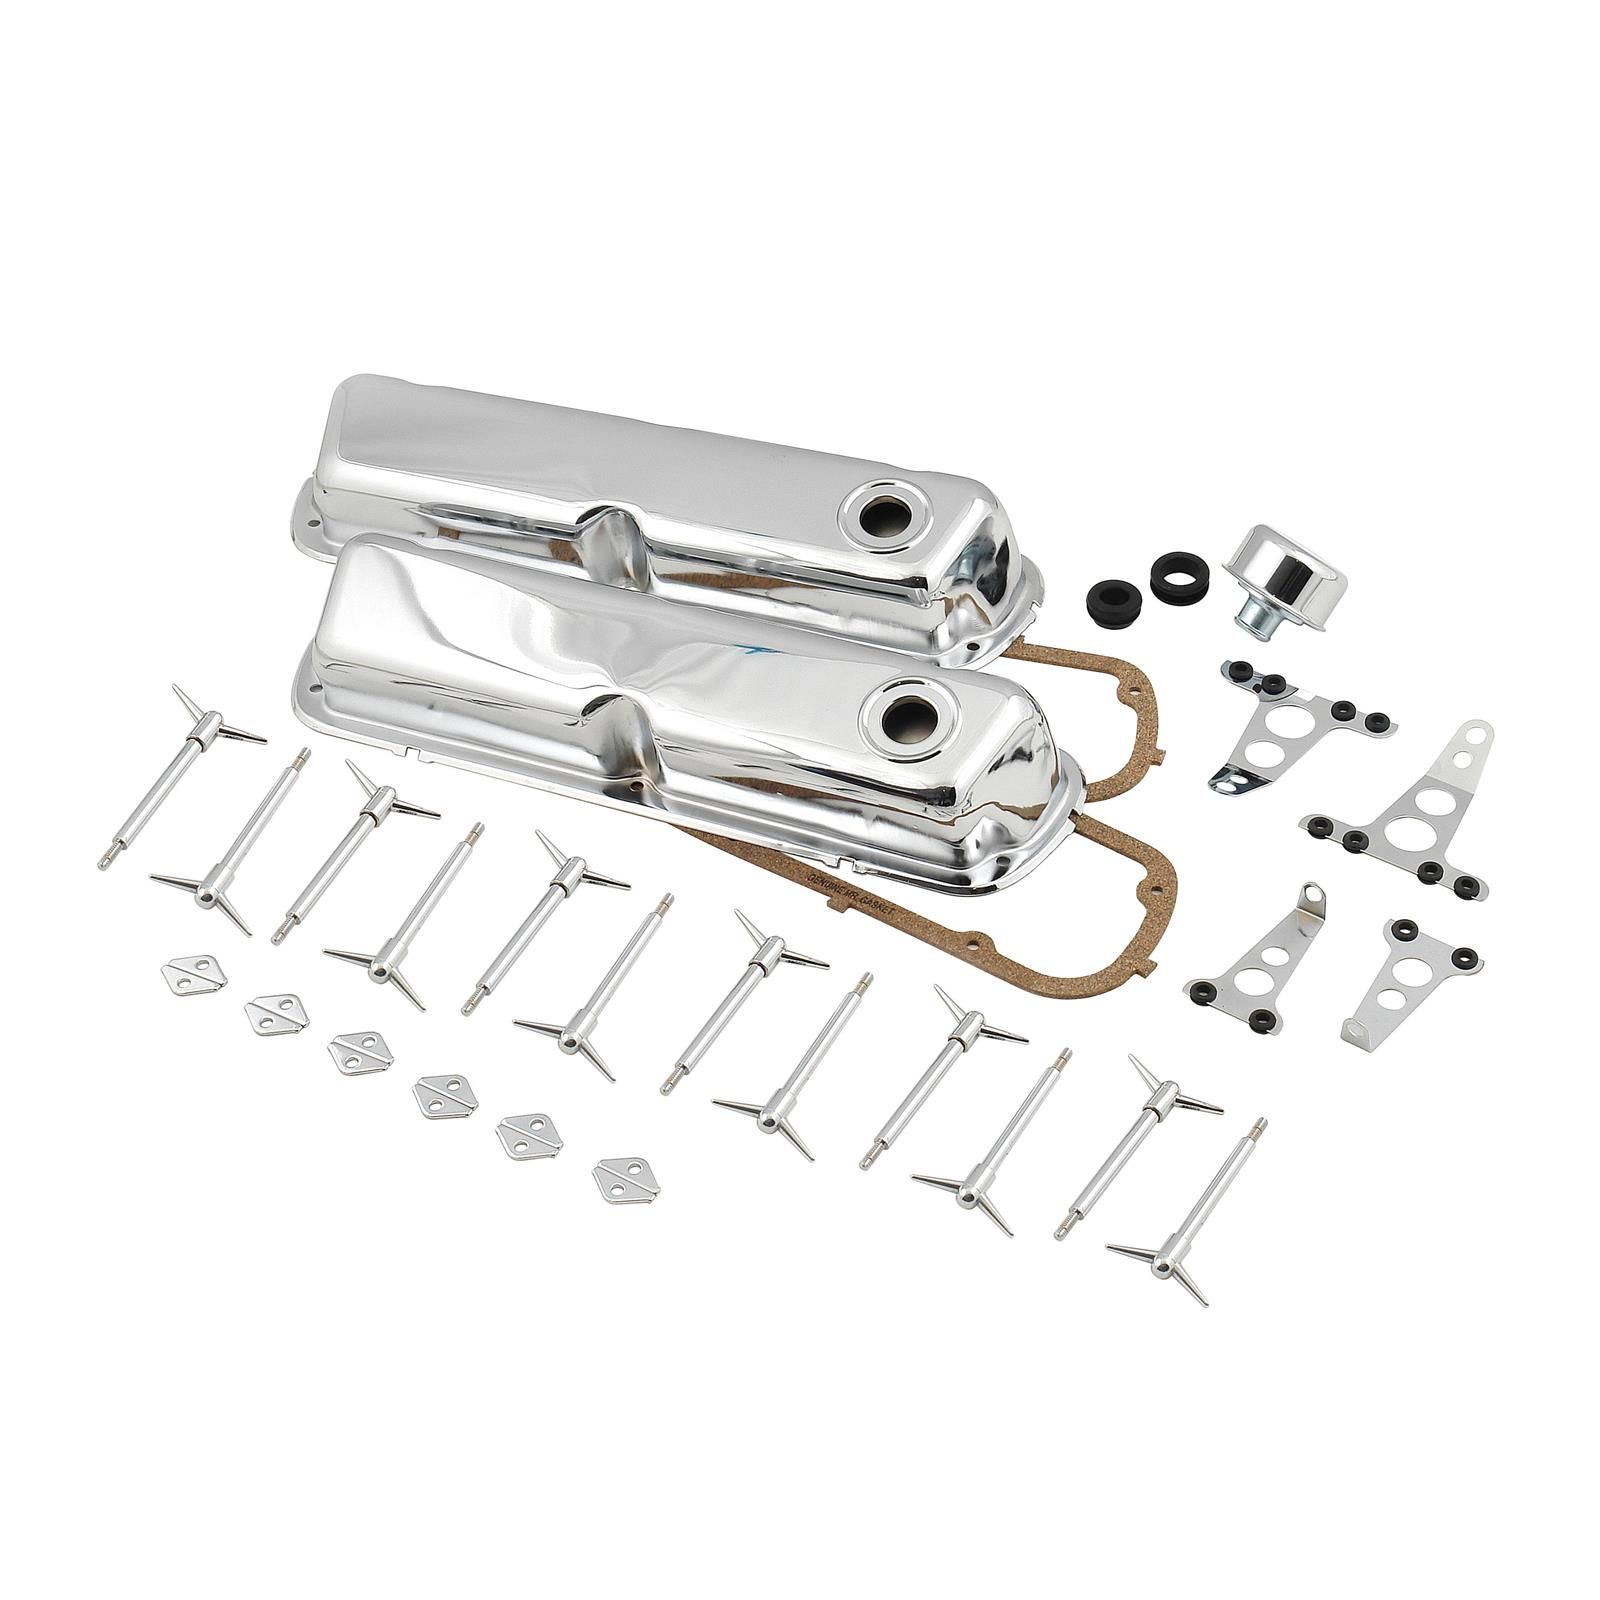 Mr Gasket 9834 Engine Dress-Up Kit